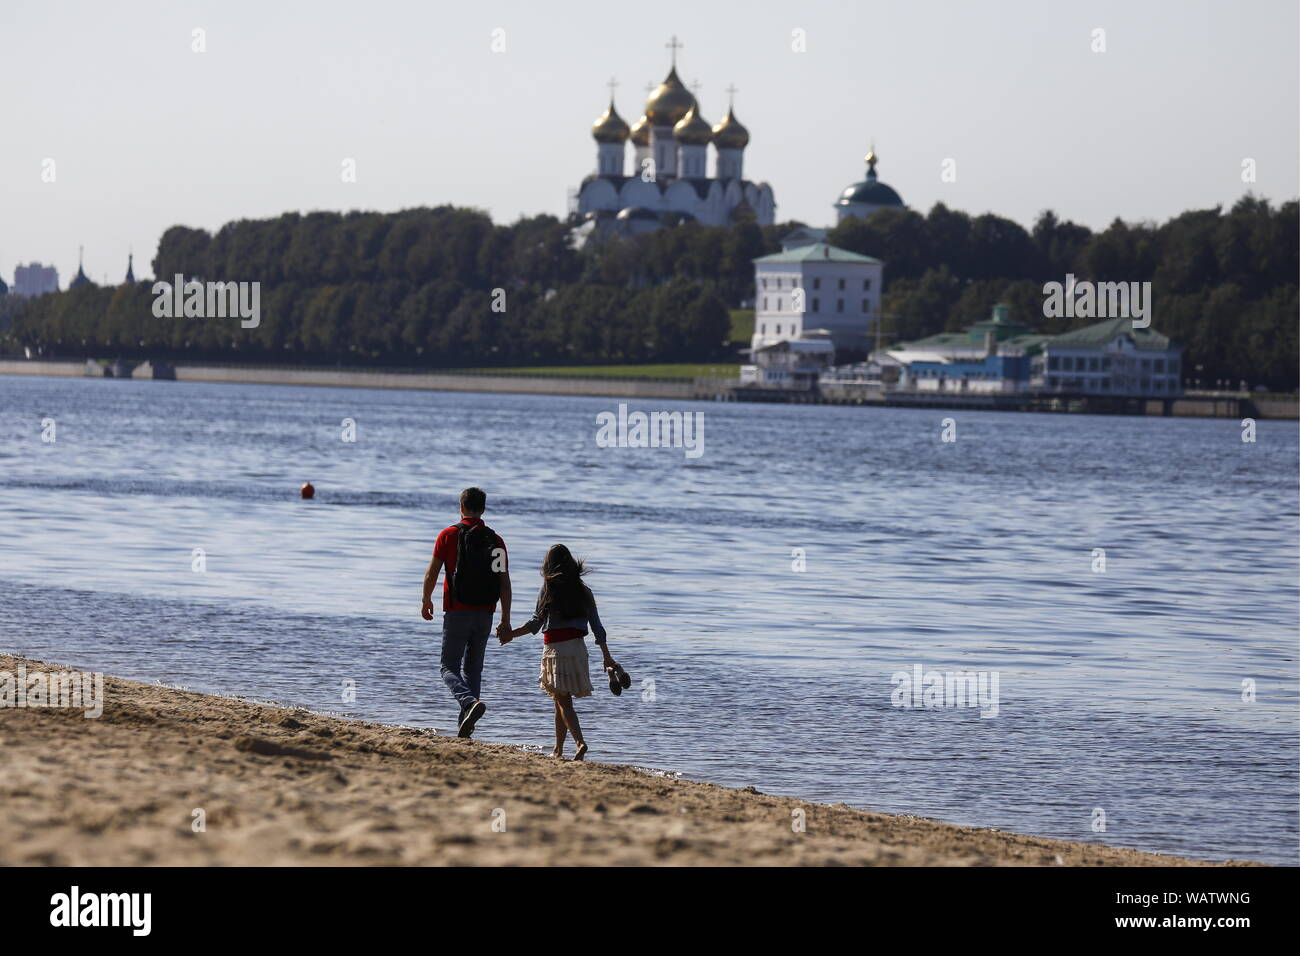 Yaroslavl, Russia. 20th Aug, 2019. YAROSLAVL, RUSSIA - AUGUST 20, 2019: A couple on the Volga beach opposite the Assumption Cathedral. Artyom Geodakyan/TASS Credit: ITAR-TASS News Agency/Alamy Live News Stock Photo